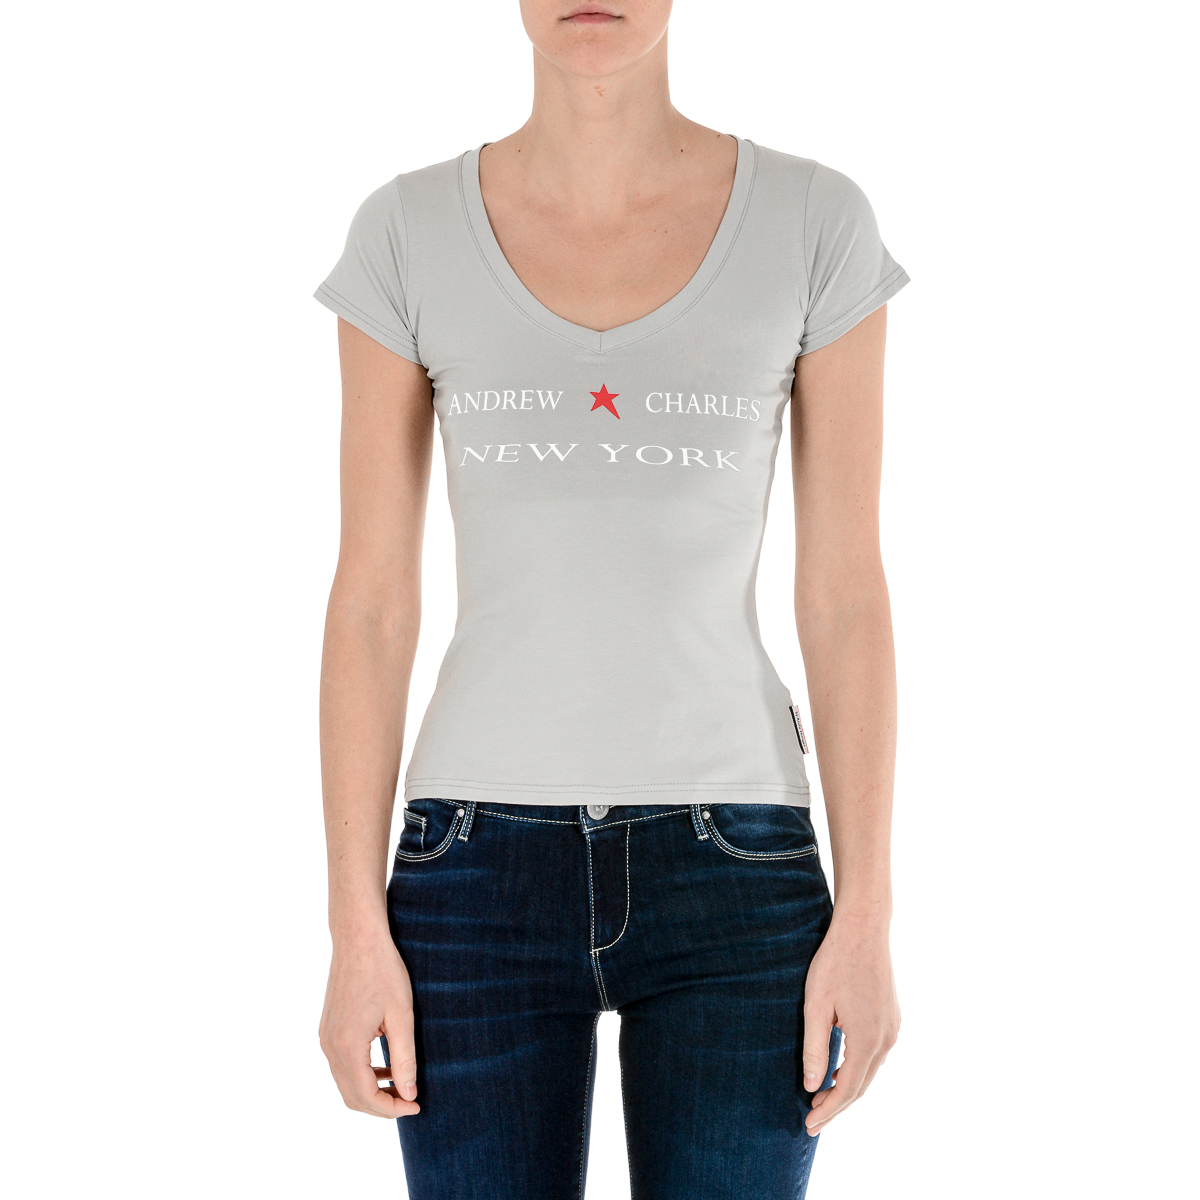 Primary image for Andrew Charles Womens T-Shirt Short Sleeves V-Neck Grey TAPIWA